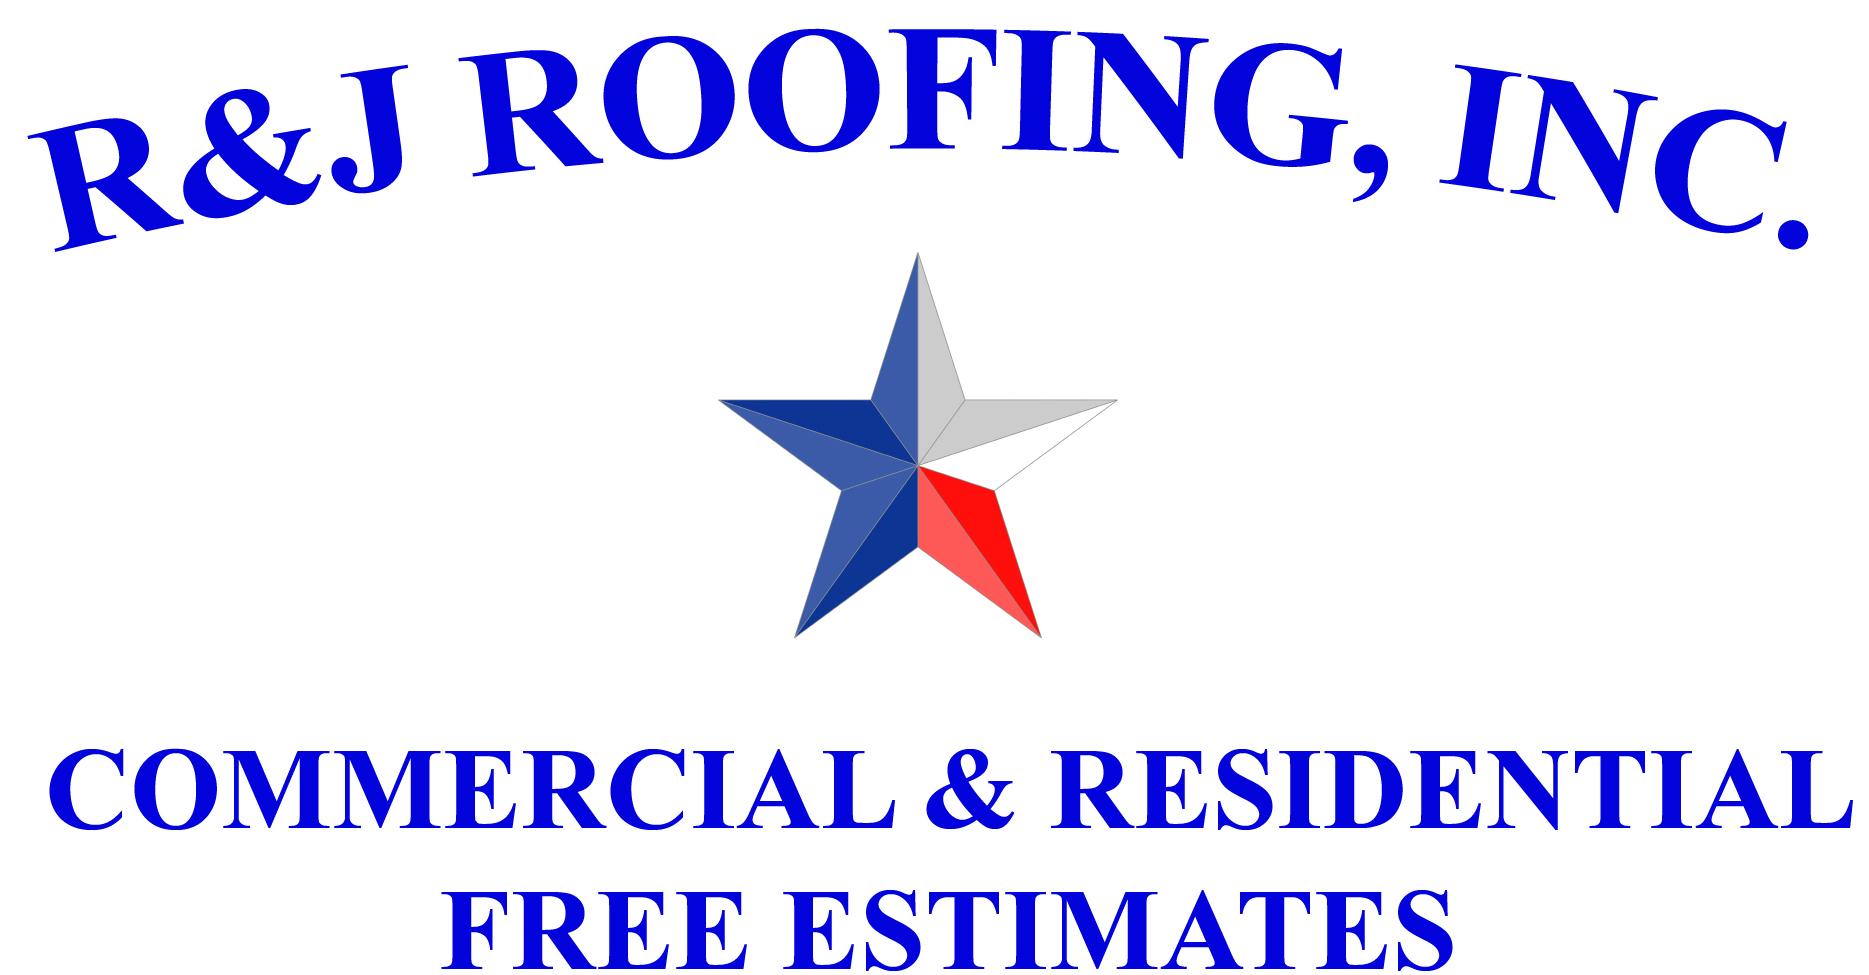 R&J Roofing, Inc.